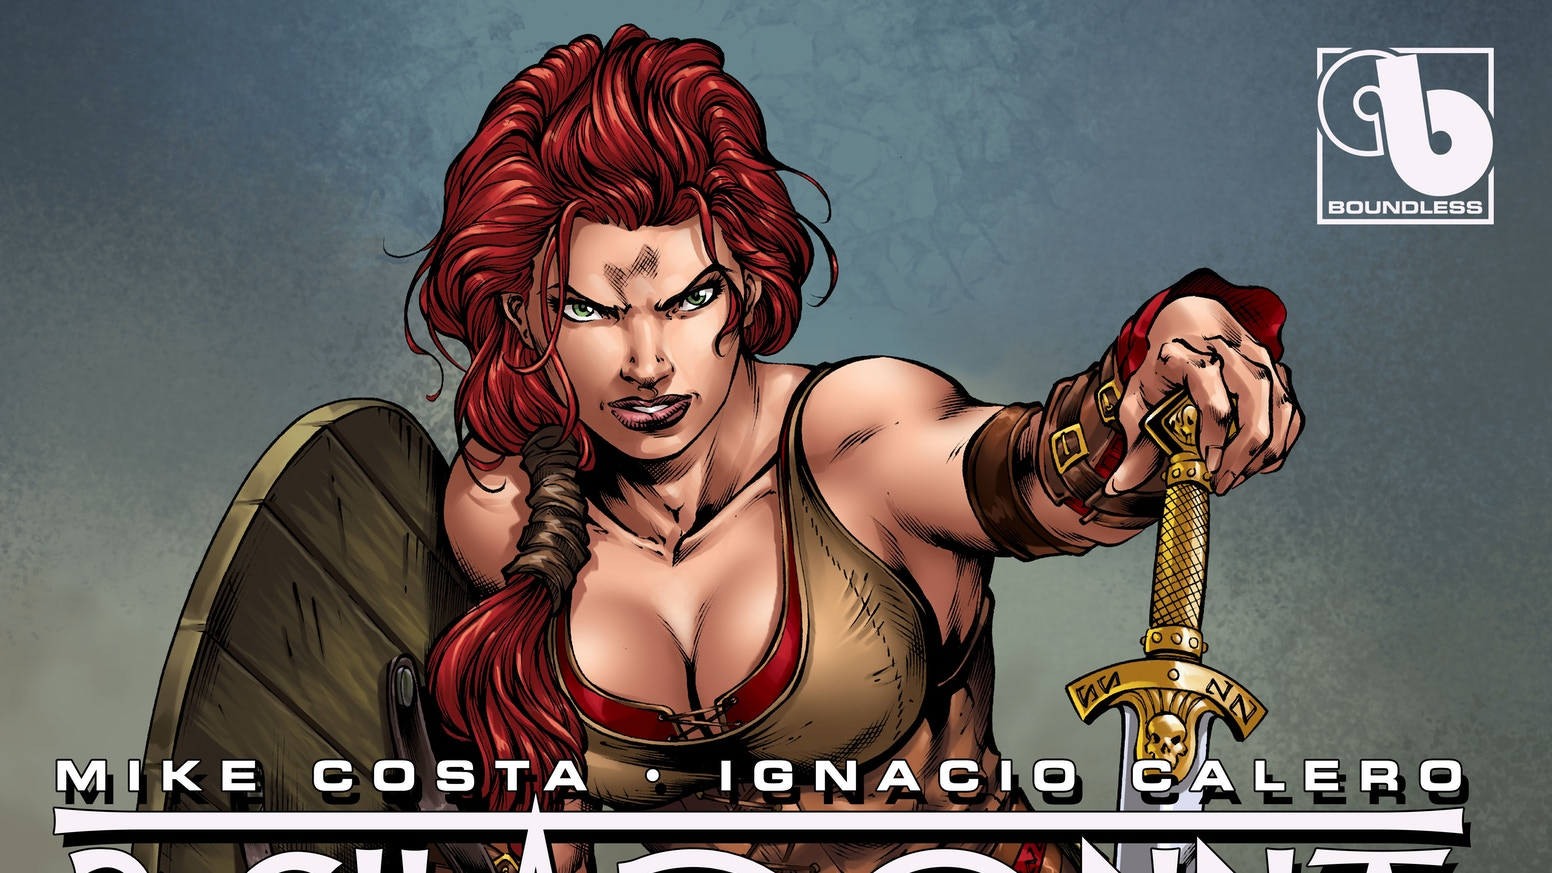 BELLADONNA returns with this action-packed sexy Viking re-imagining by writer Mike Costa and stunning artist Ignacio Calero.